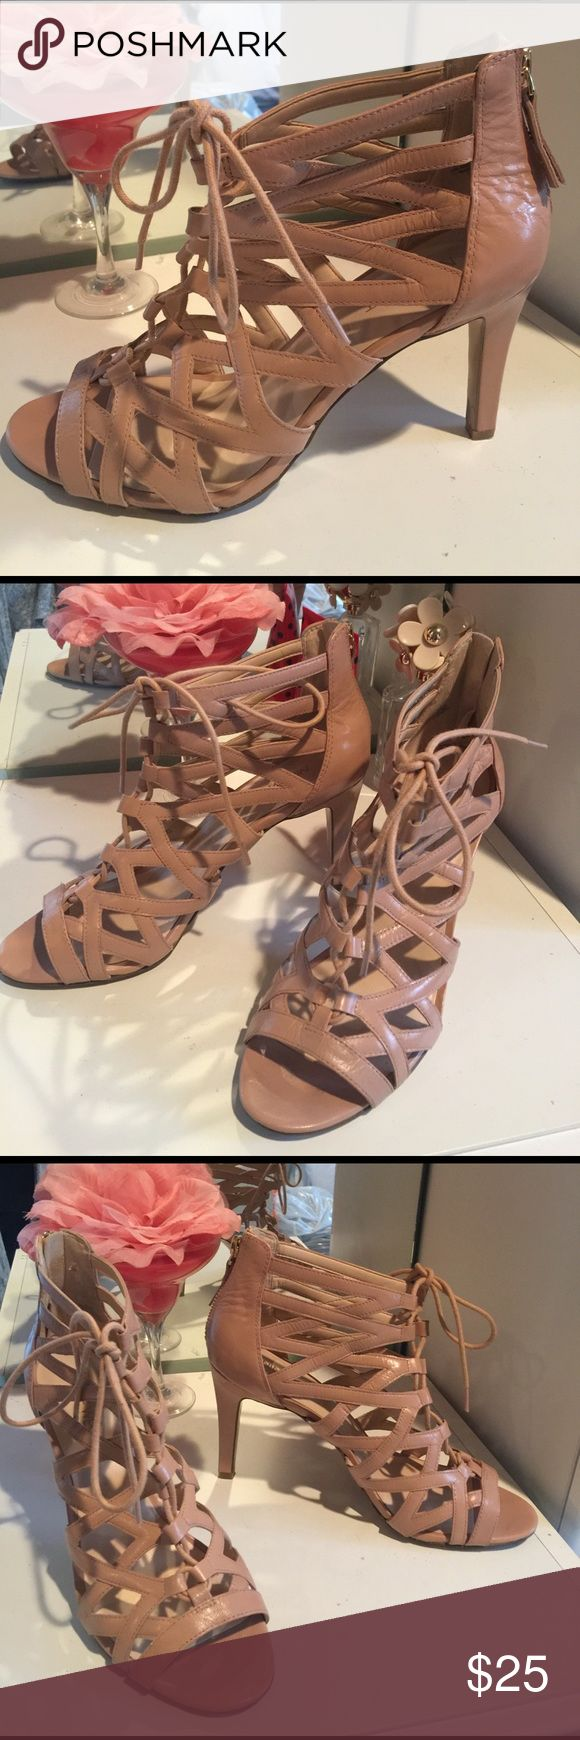 "NINEWEST CUTOUT DRESS HEELS So amazing with everything! Nude zip up back cut out heels by NINEWEST. Front lace up and tie. 4"" heel. Size 8.5M Nine West Shoes Heels"